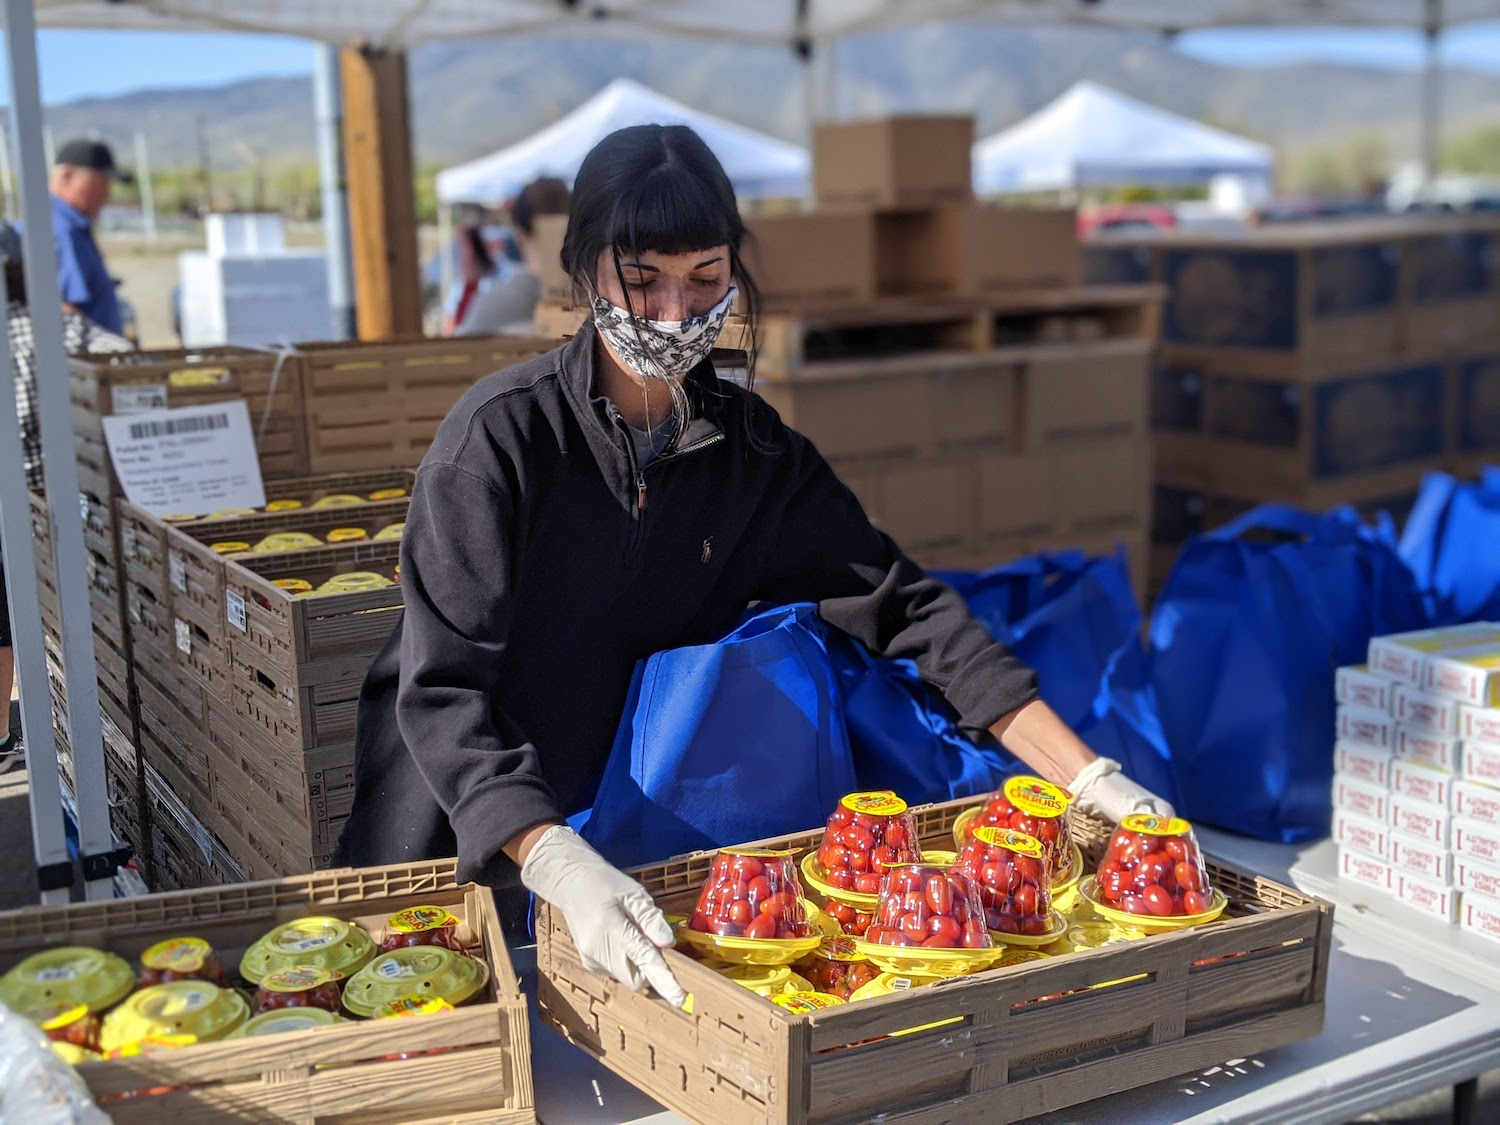 A woman unpacks a crate of cherry tomatoes for a distribution of fresh produce.